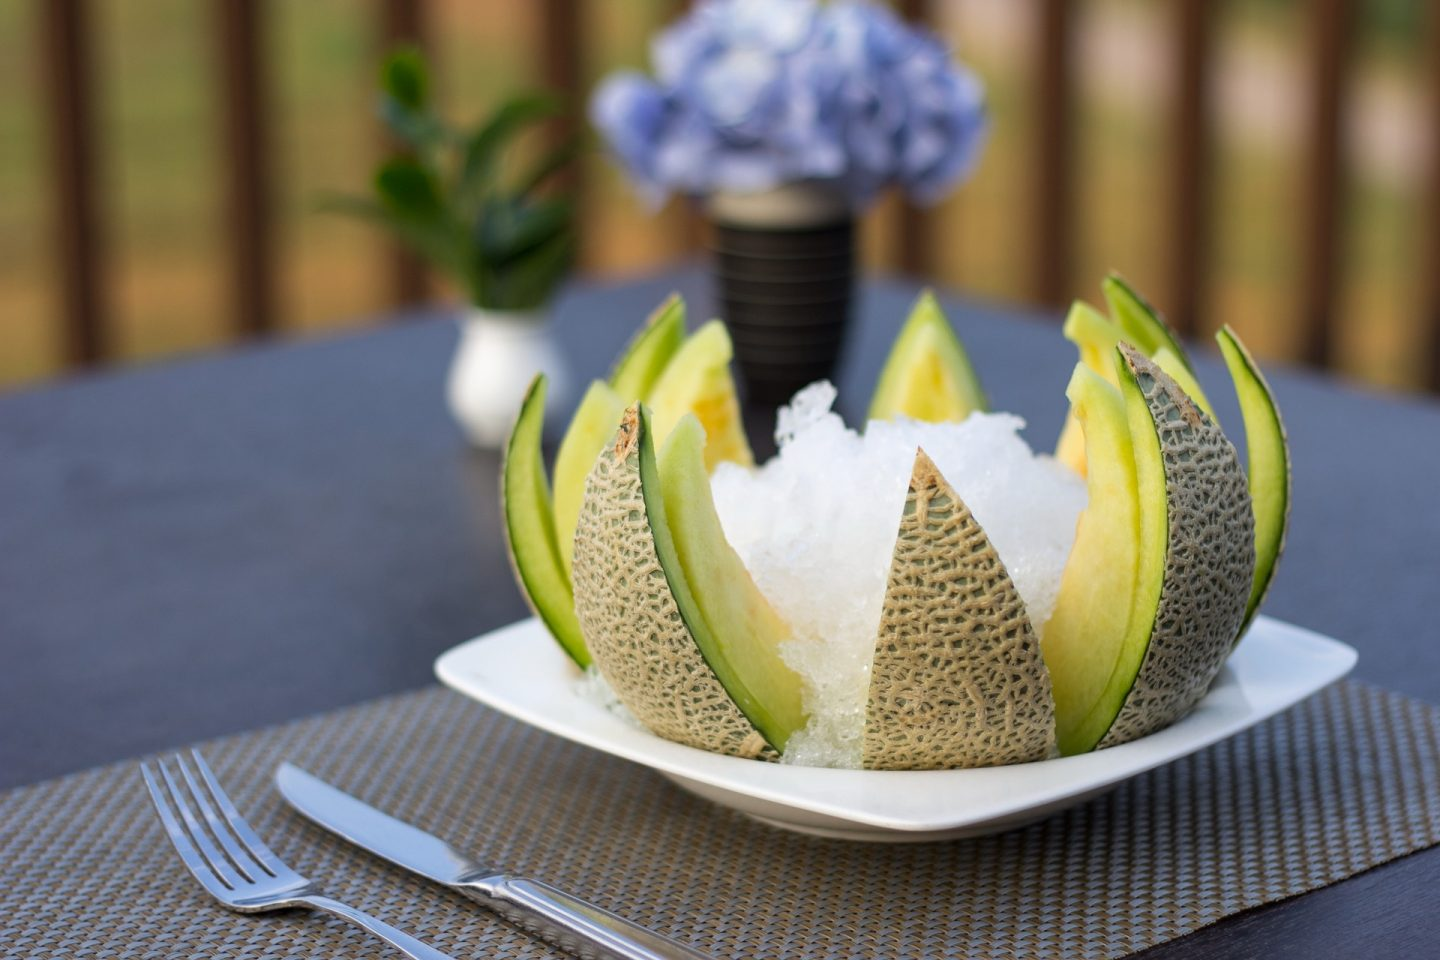 10 Reasons Why You Should Eat Melon